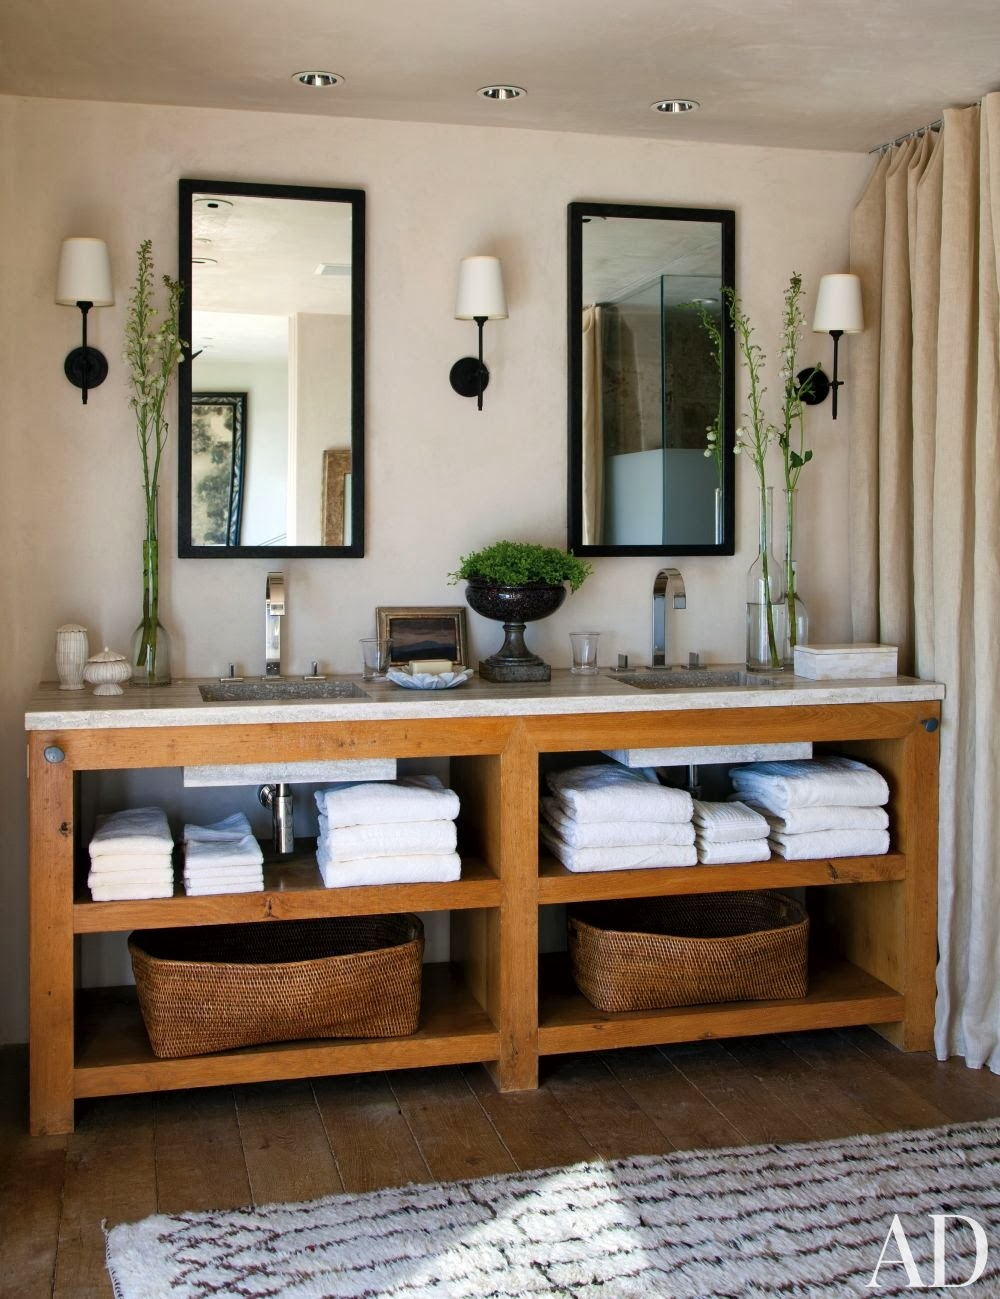 Refresheddesigns seven stunning modern rustic bathrooms - Beautiful modern bathroom designs ...